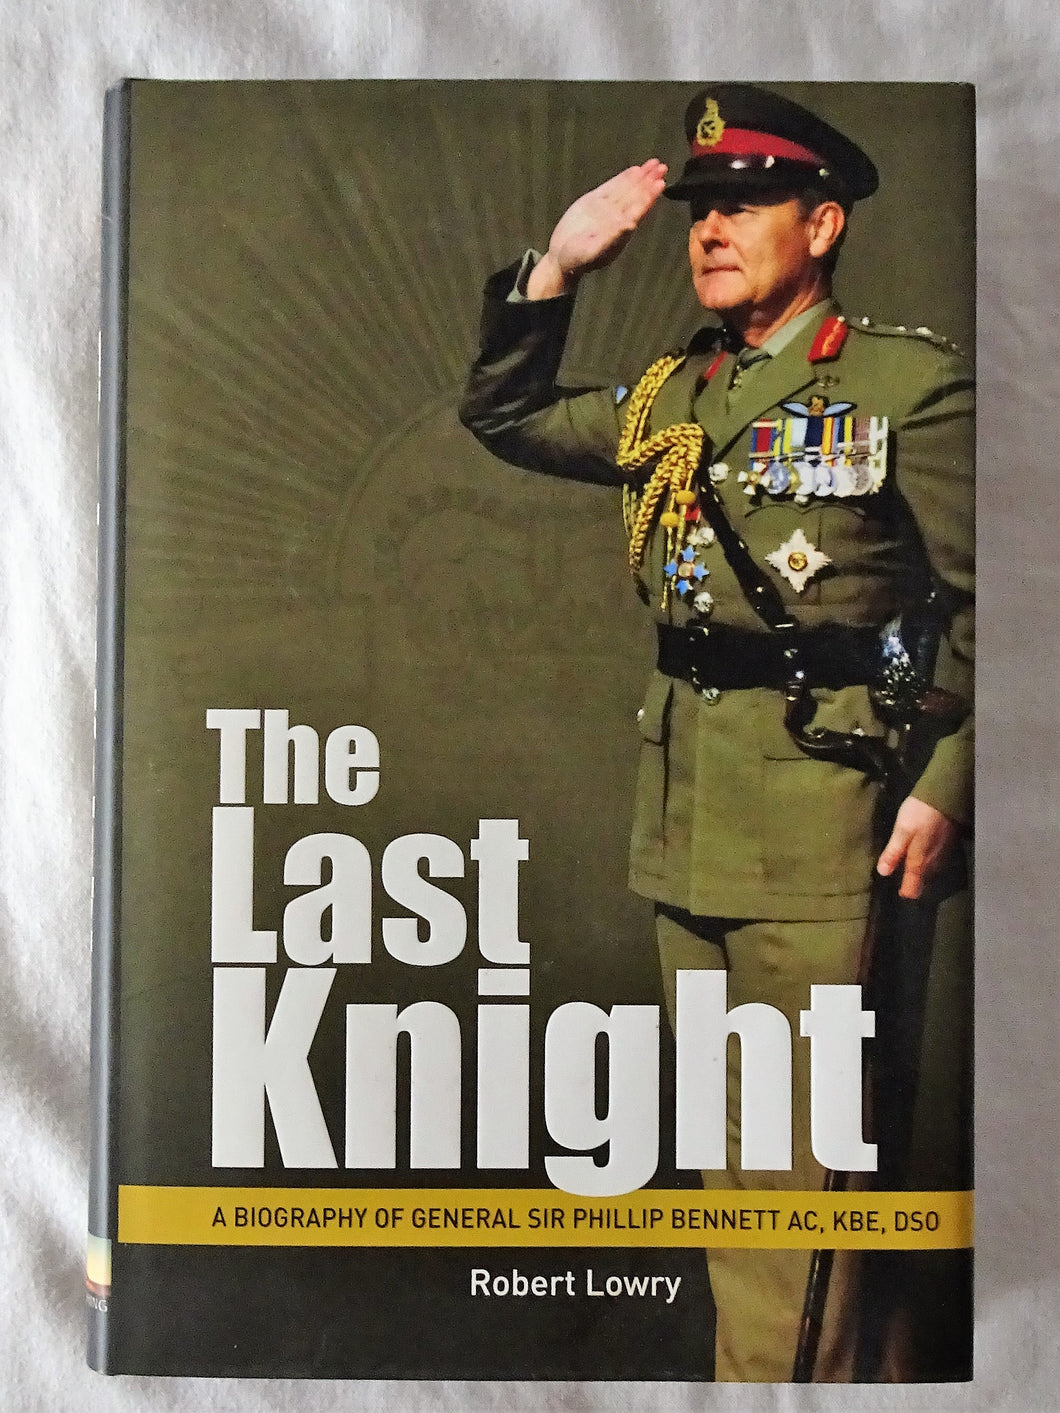 The Last Knight by Robert Lowry